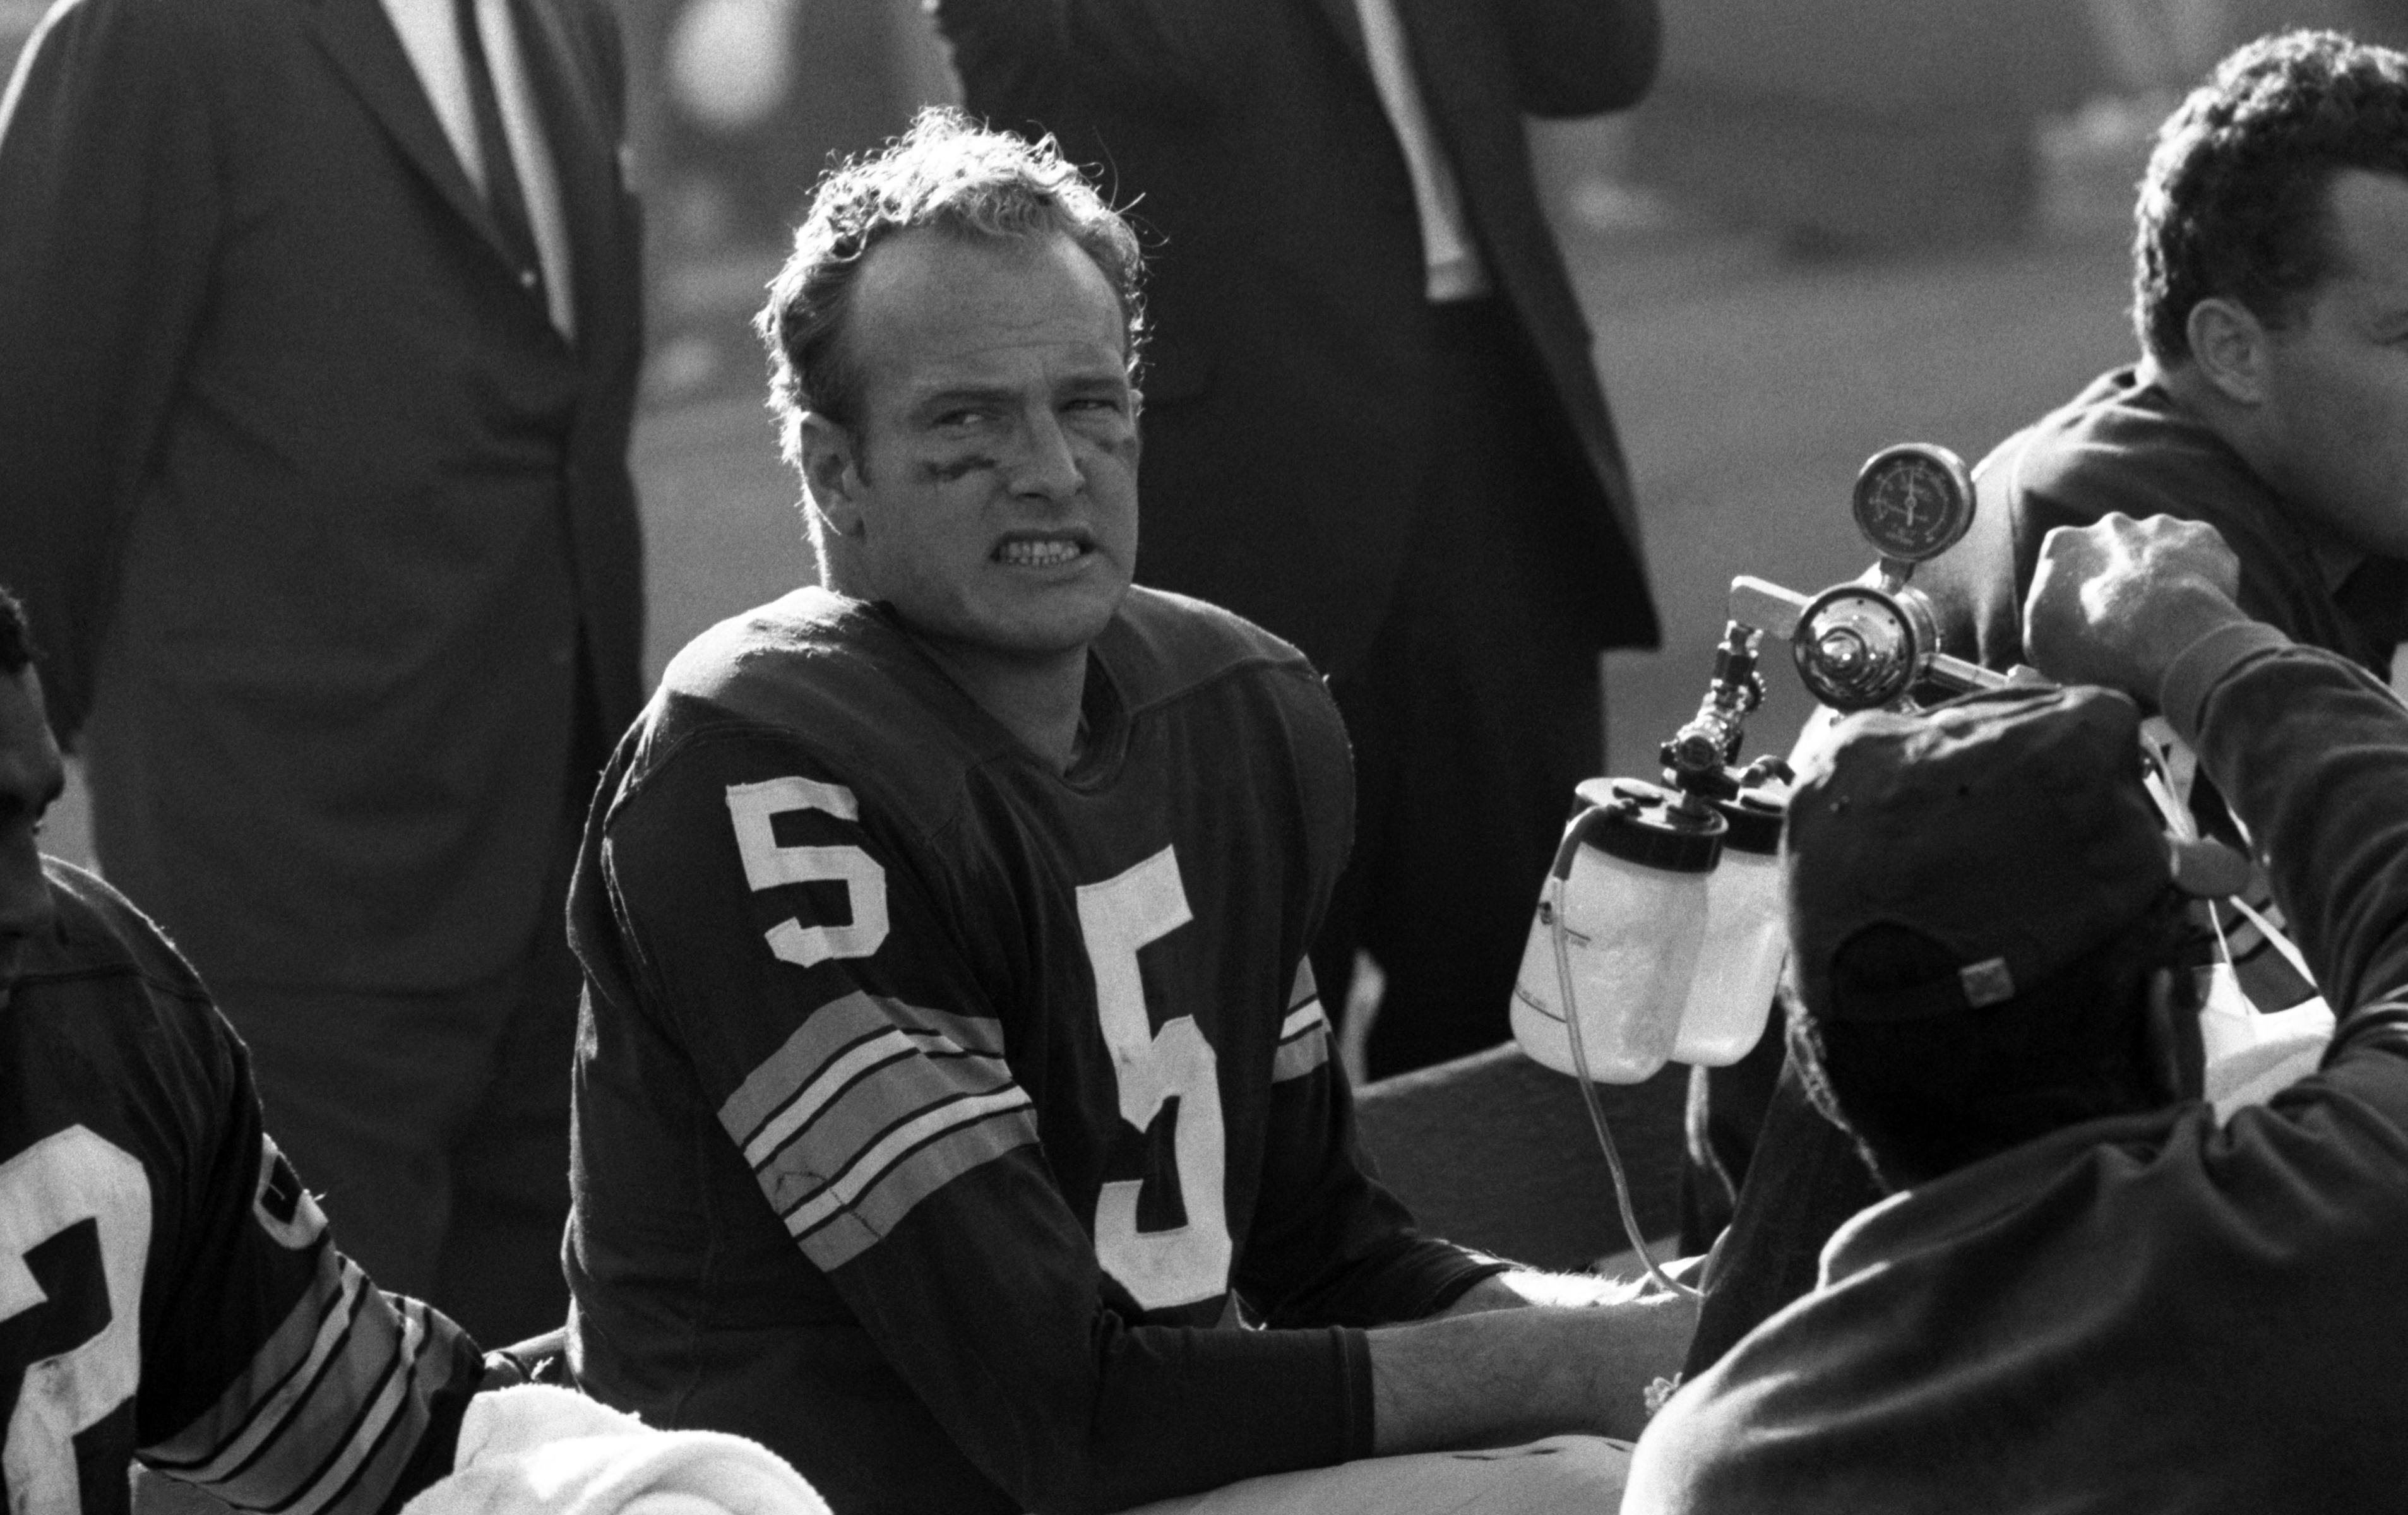 Paul Hornung of the Green Bay Packers watches the action in 1967